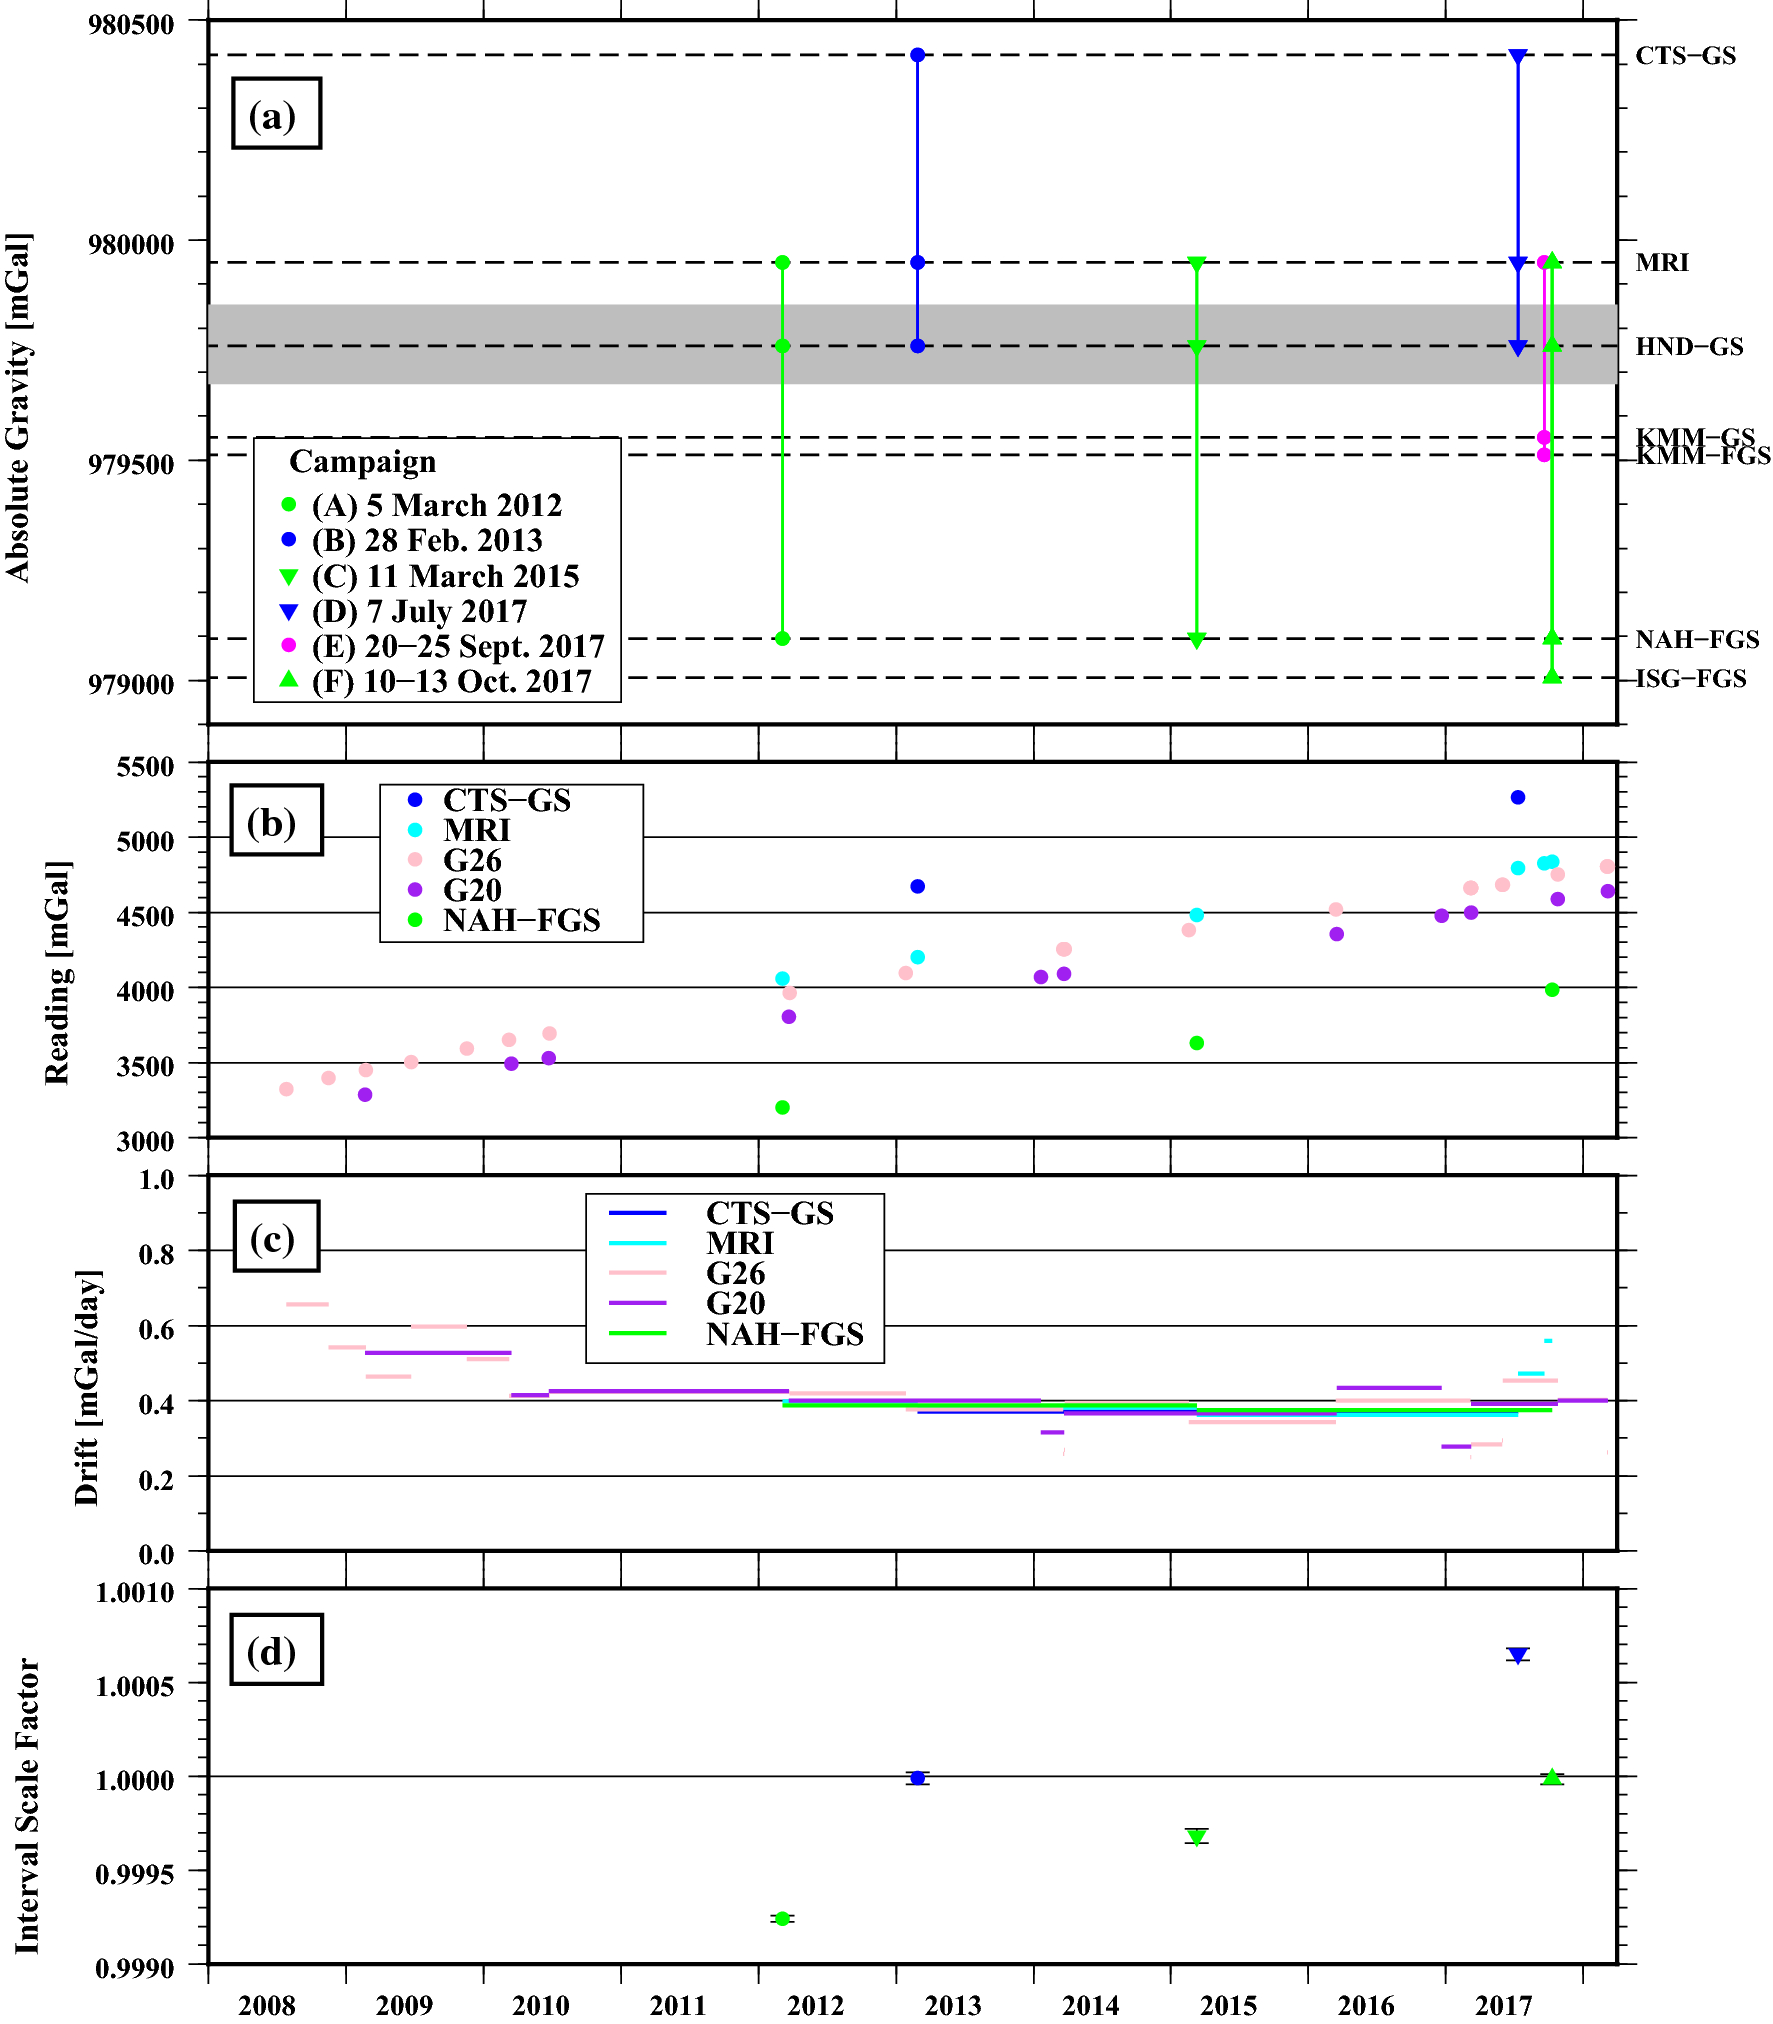 Apparent calibration shift of the Scintrex CG-5 gravimeter caused by